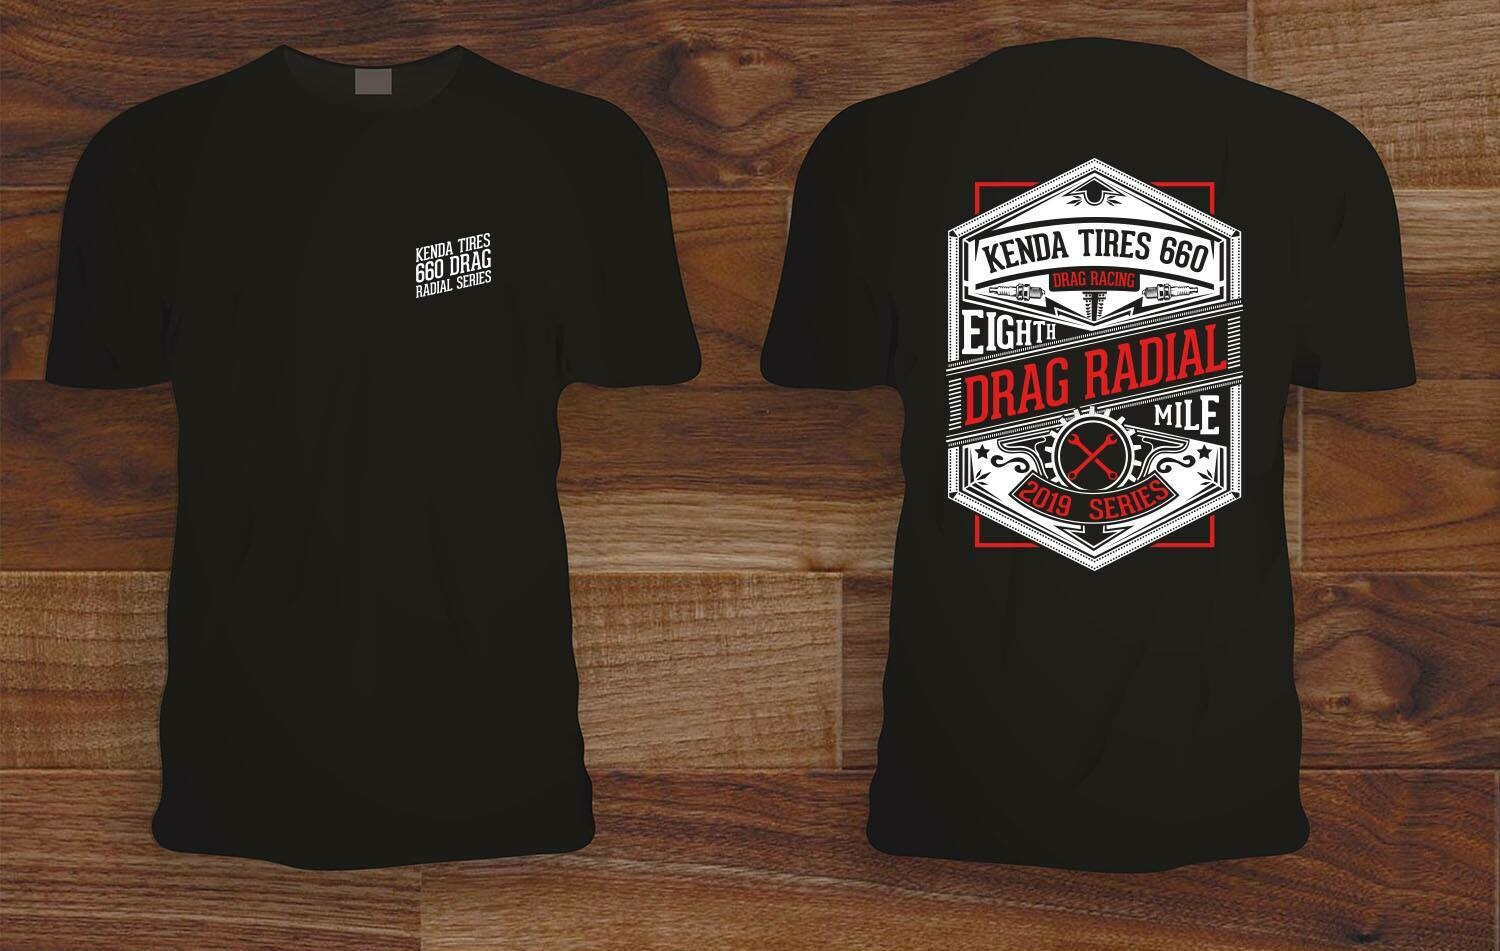 Kenda Round 4 Event T-Shirt